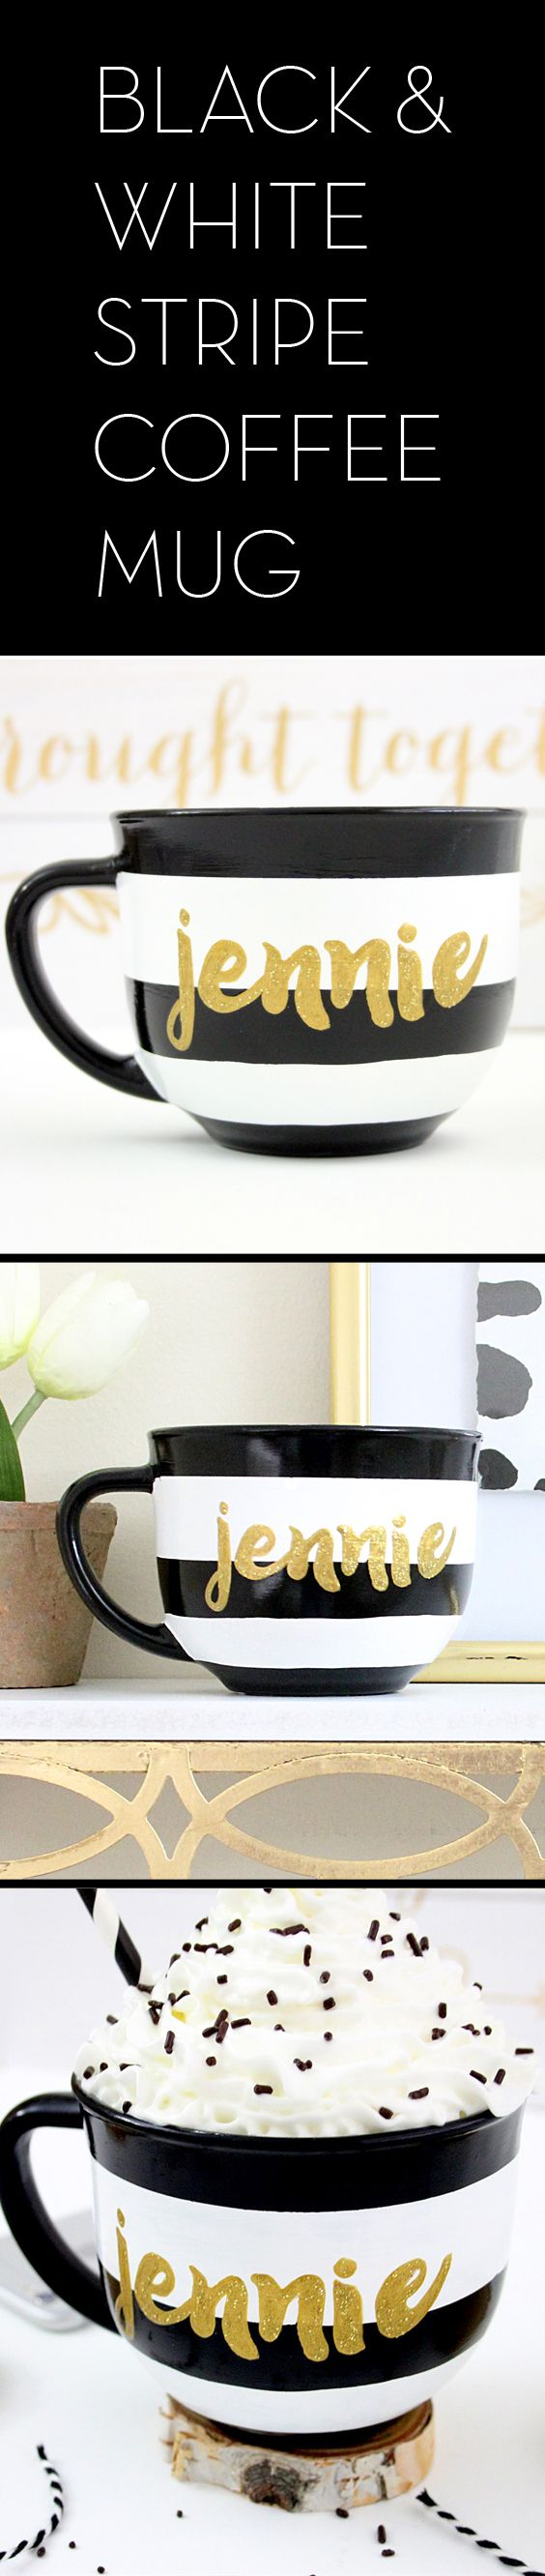 Black and white stripe personalized coffee mug.